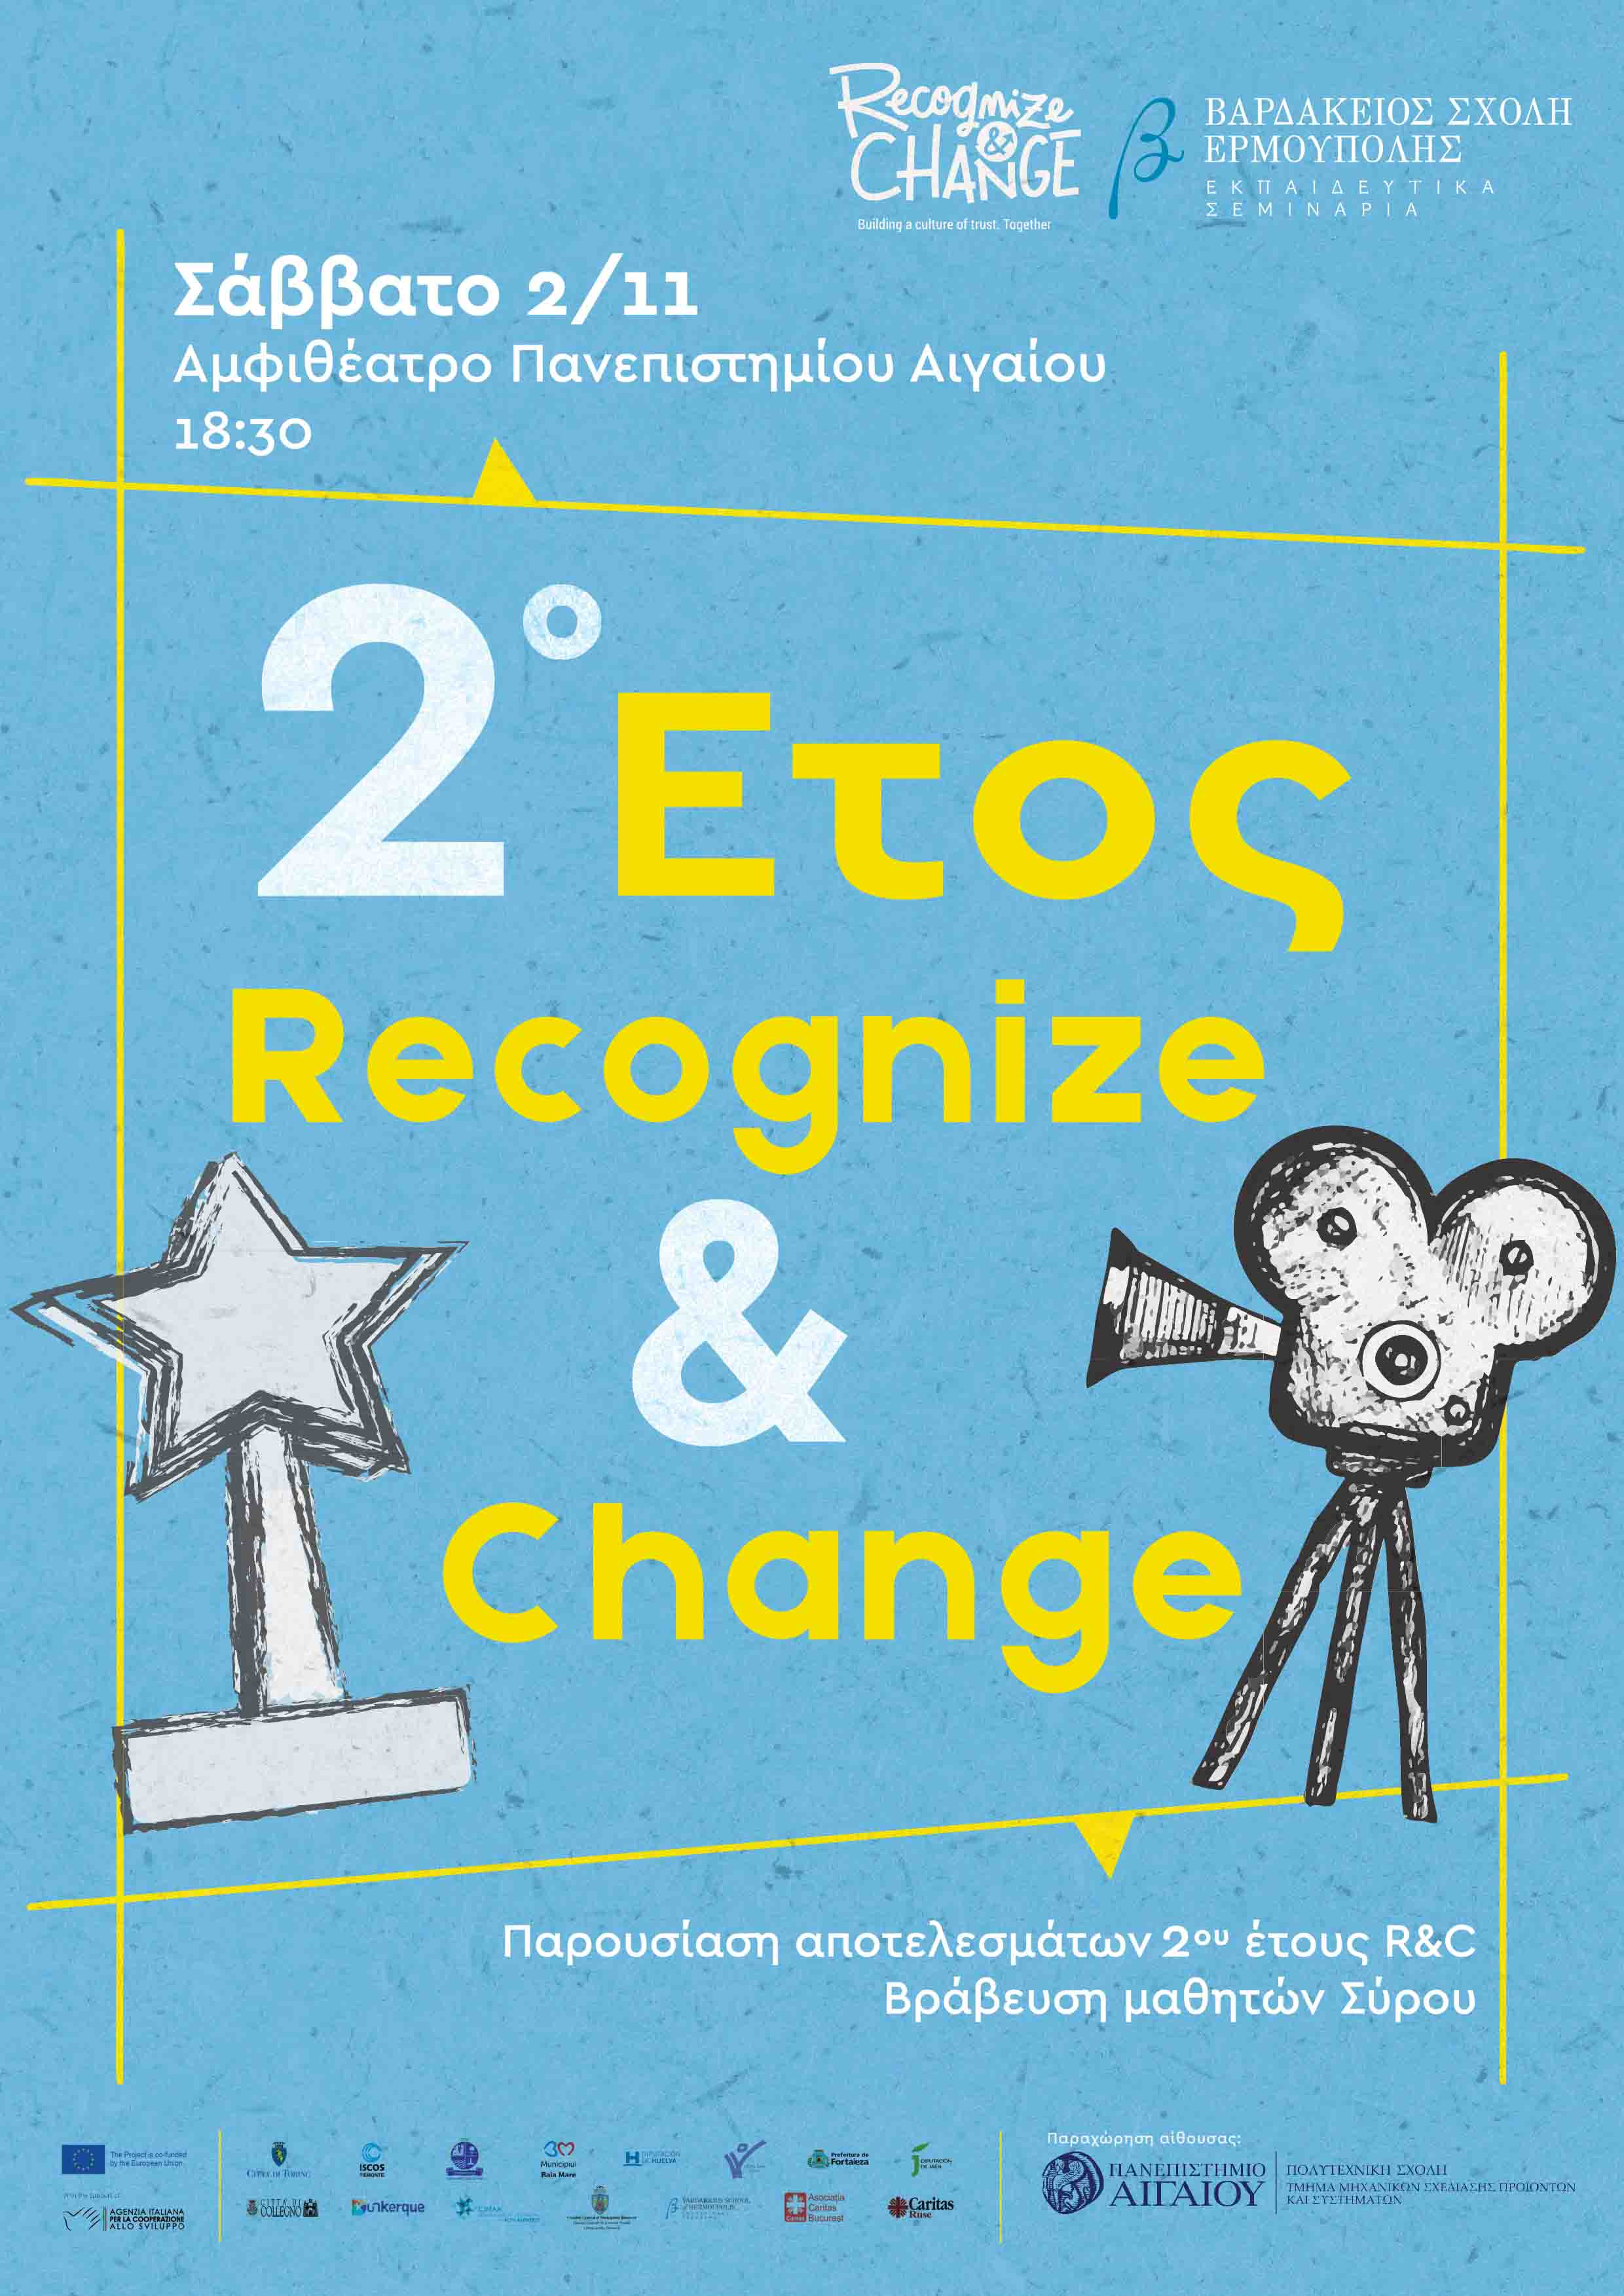 Recognize and Change πρόσκληση σε εκδήλωση...